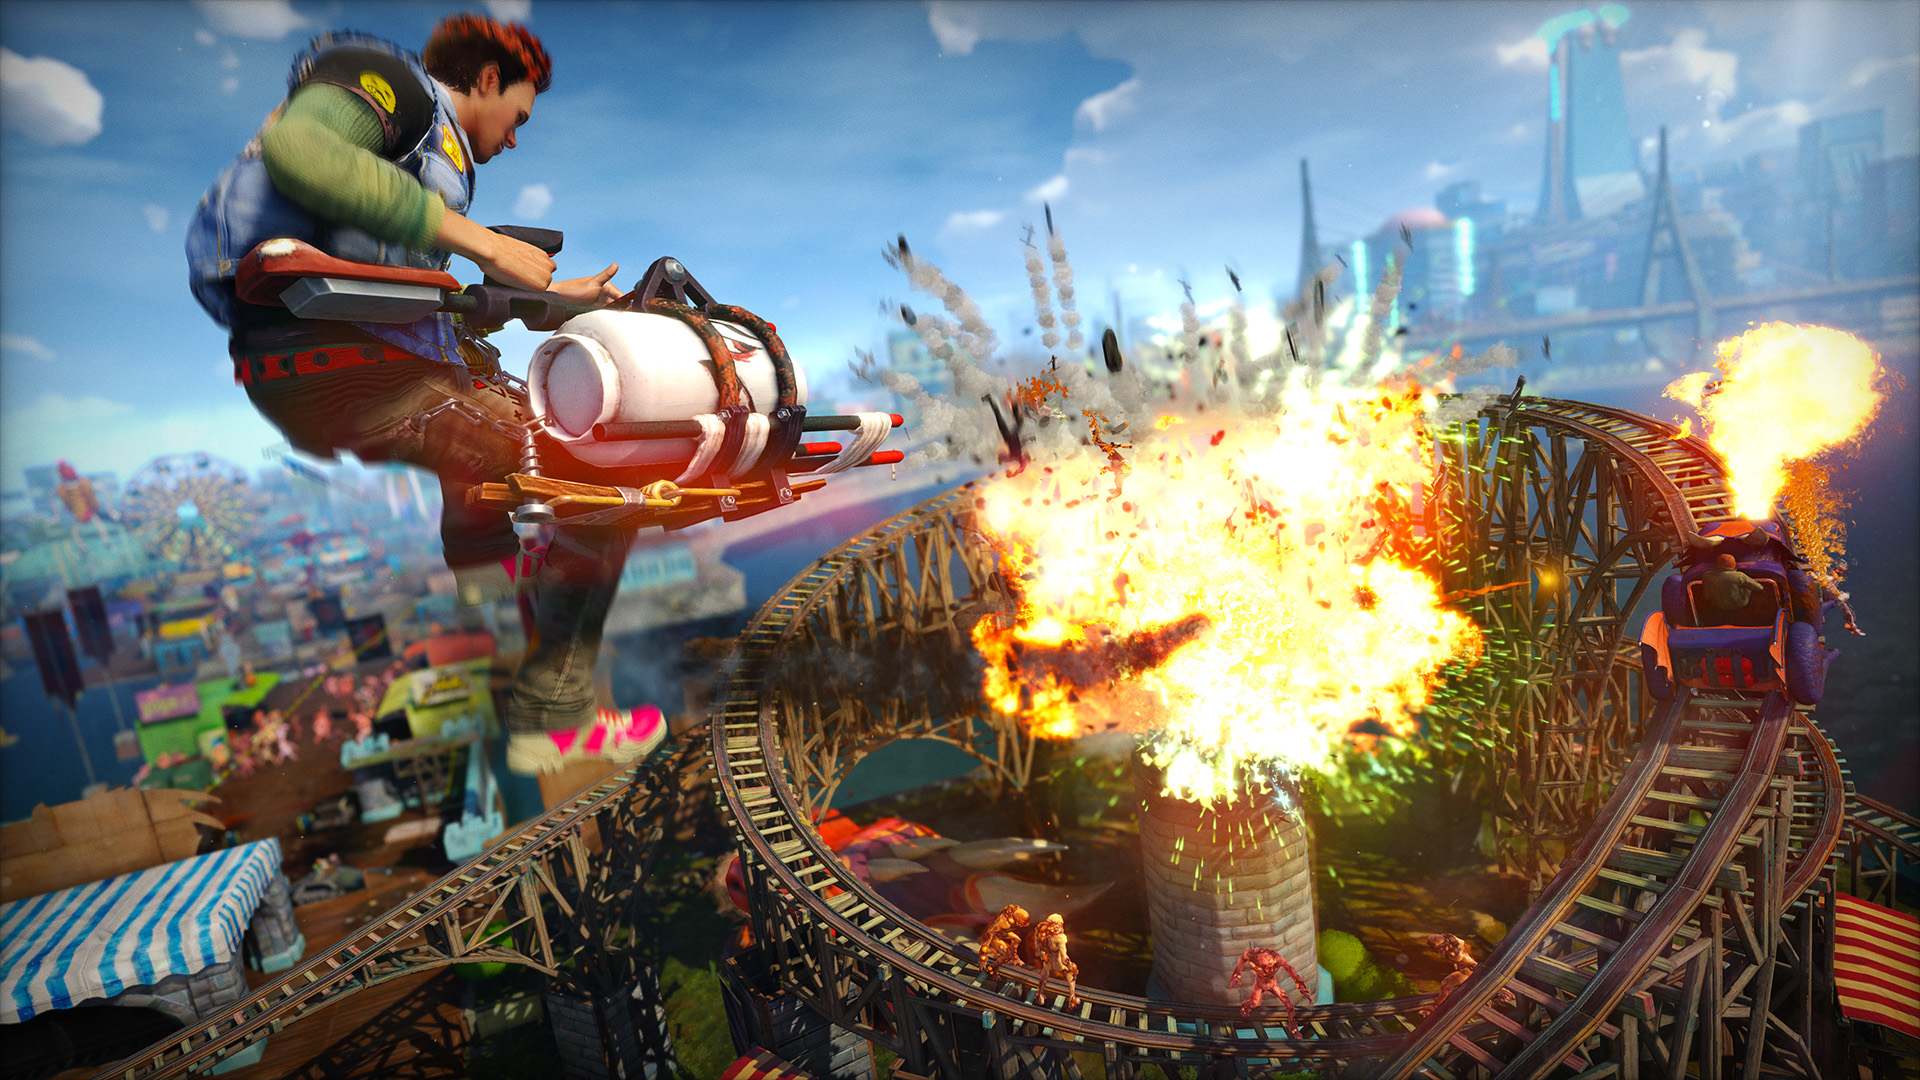 E3 2014: Sunset Overdrive Hands-On Impressions: Goofy, Vibrant Fun